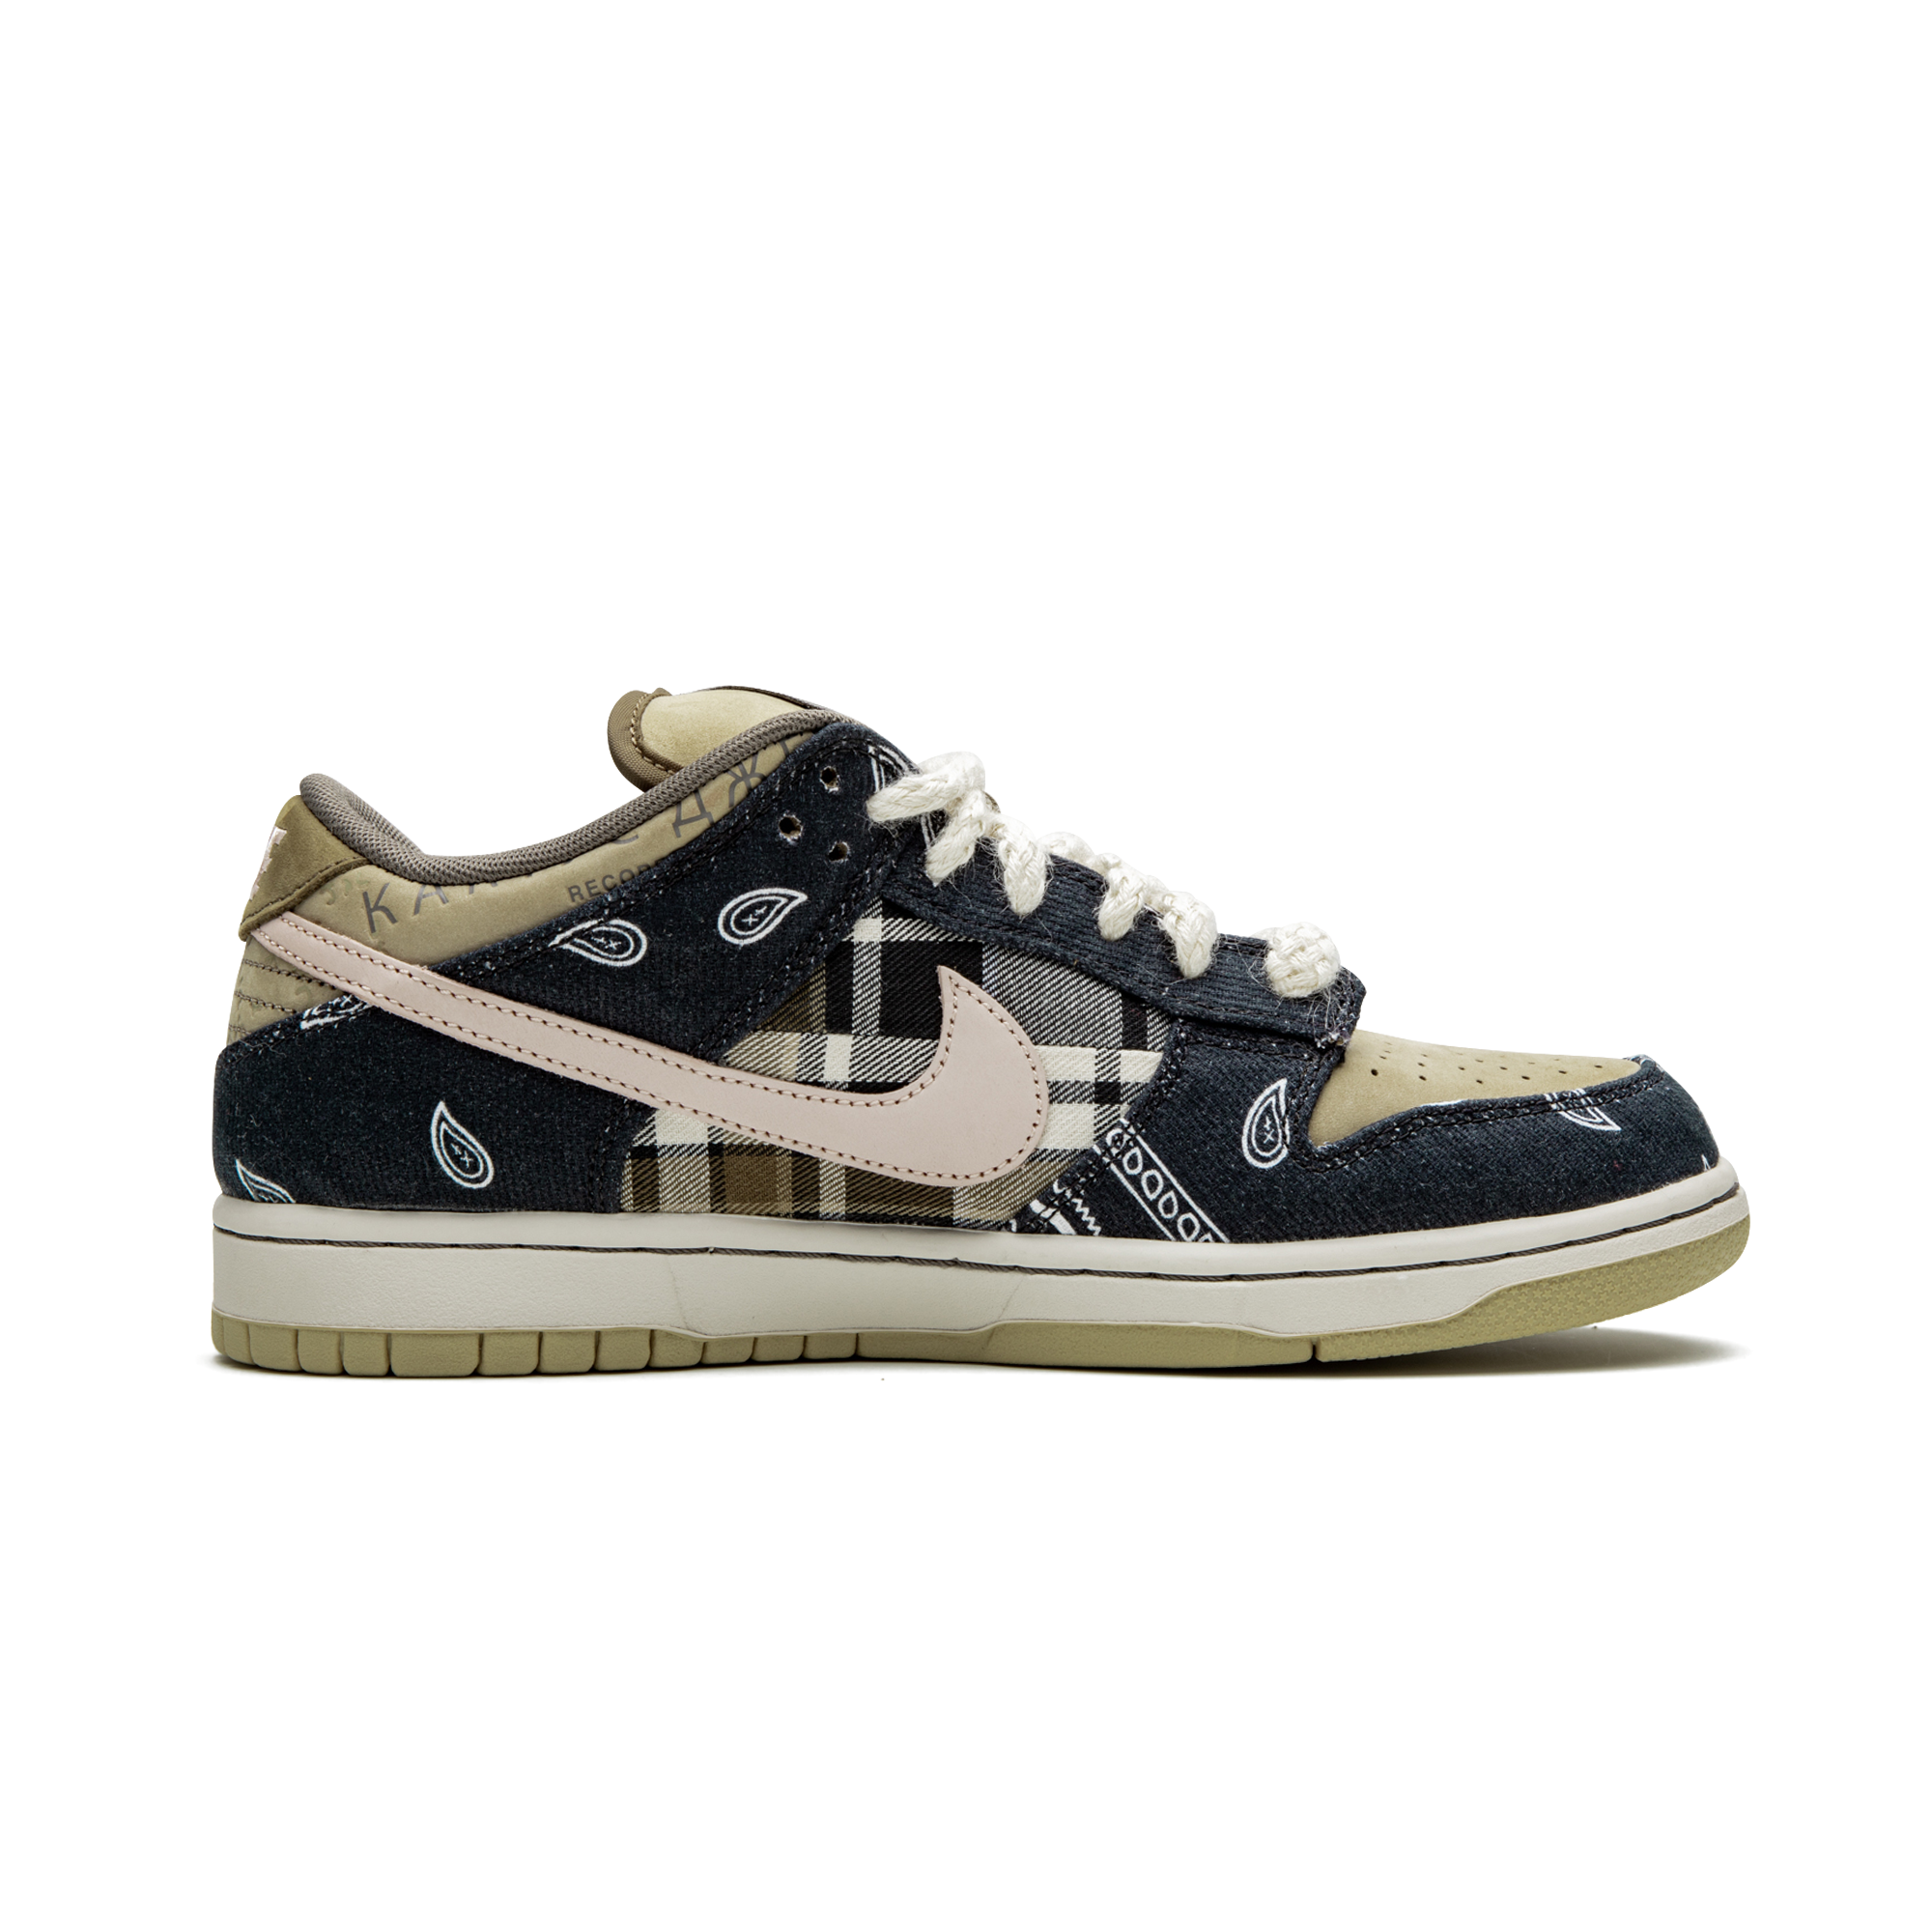 Nike SB Dunk Low - Travis Scott